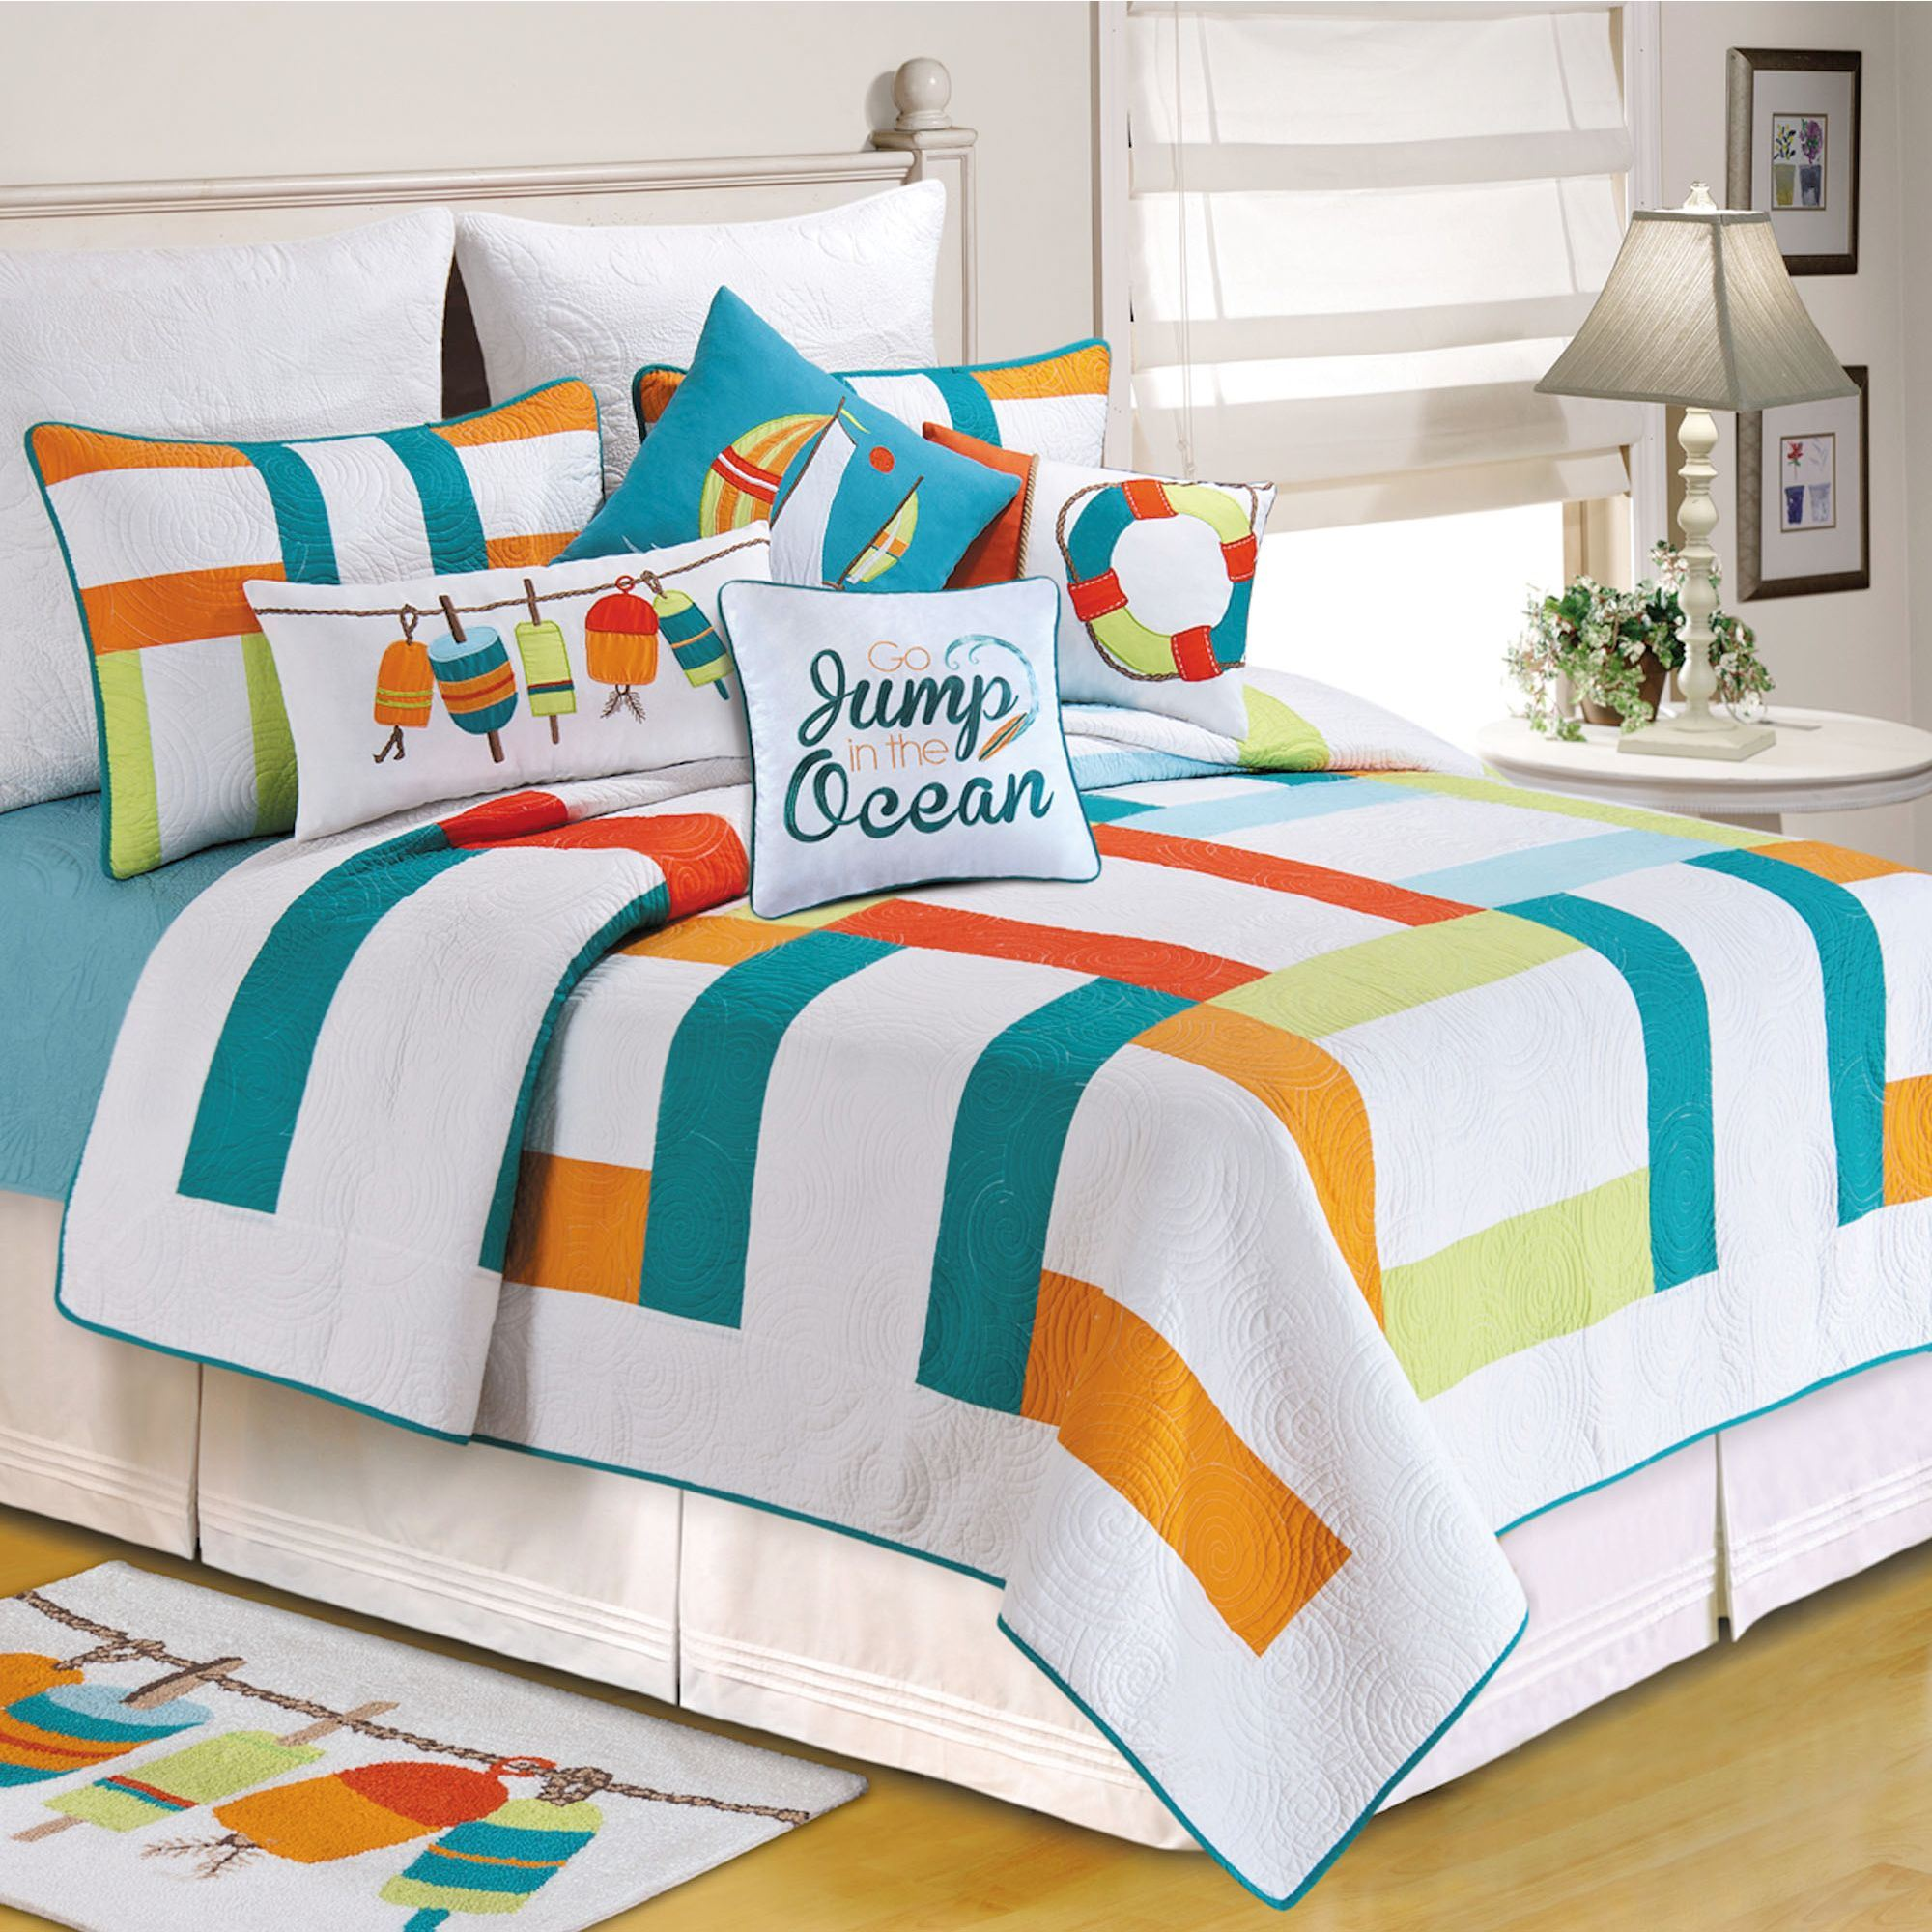 Zuma Bay Multicolored Quilt Bedding : teal quilt bedding - Adamdwight.com